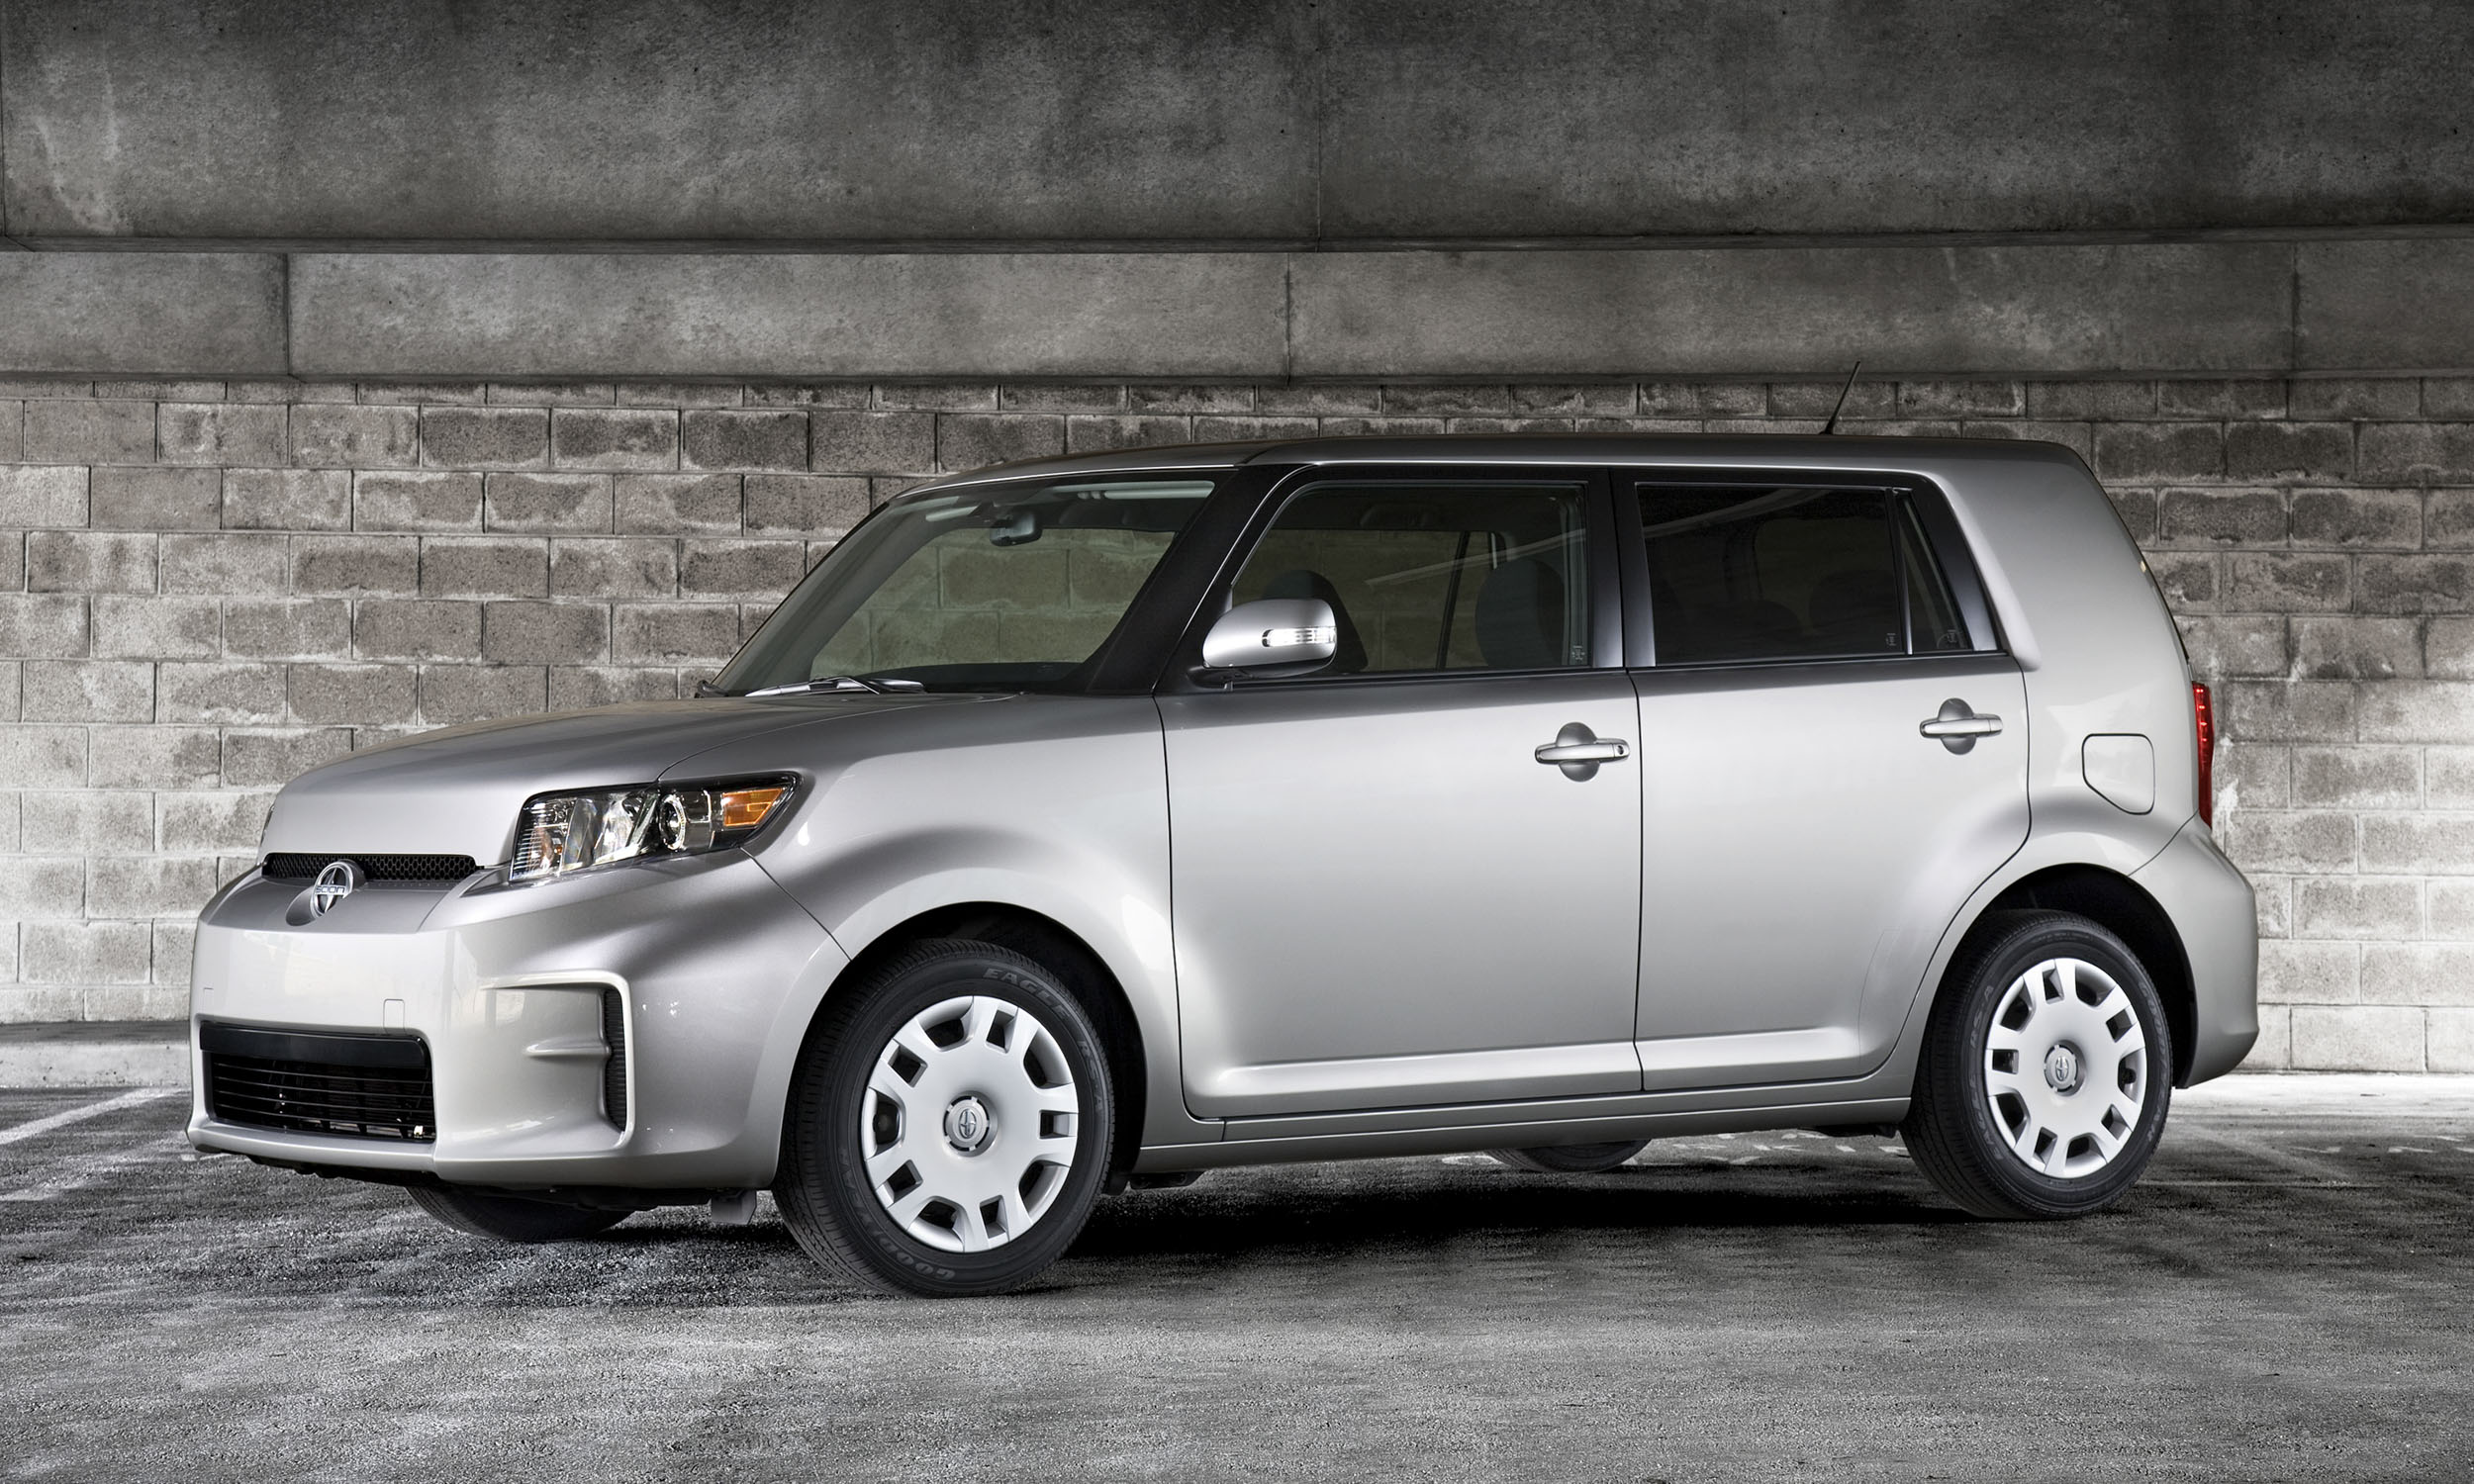 scion xb owners manual pdf download autos post. Black Bedroom Furniture Sets. Home Design Ideas